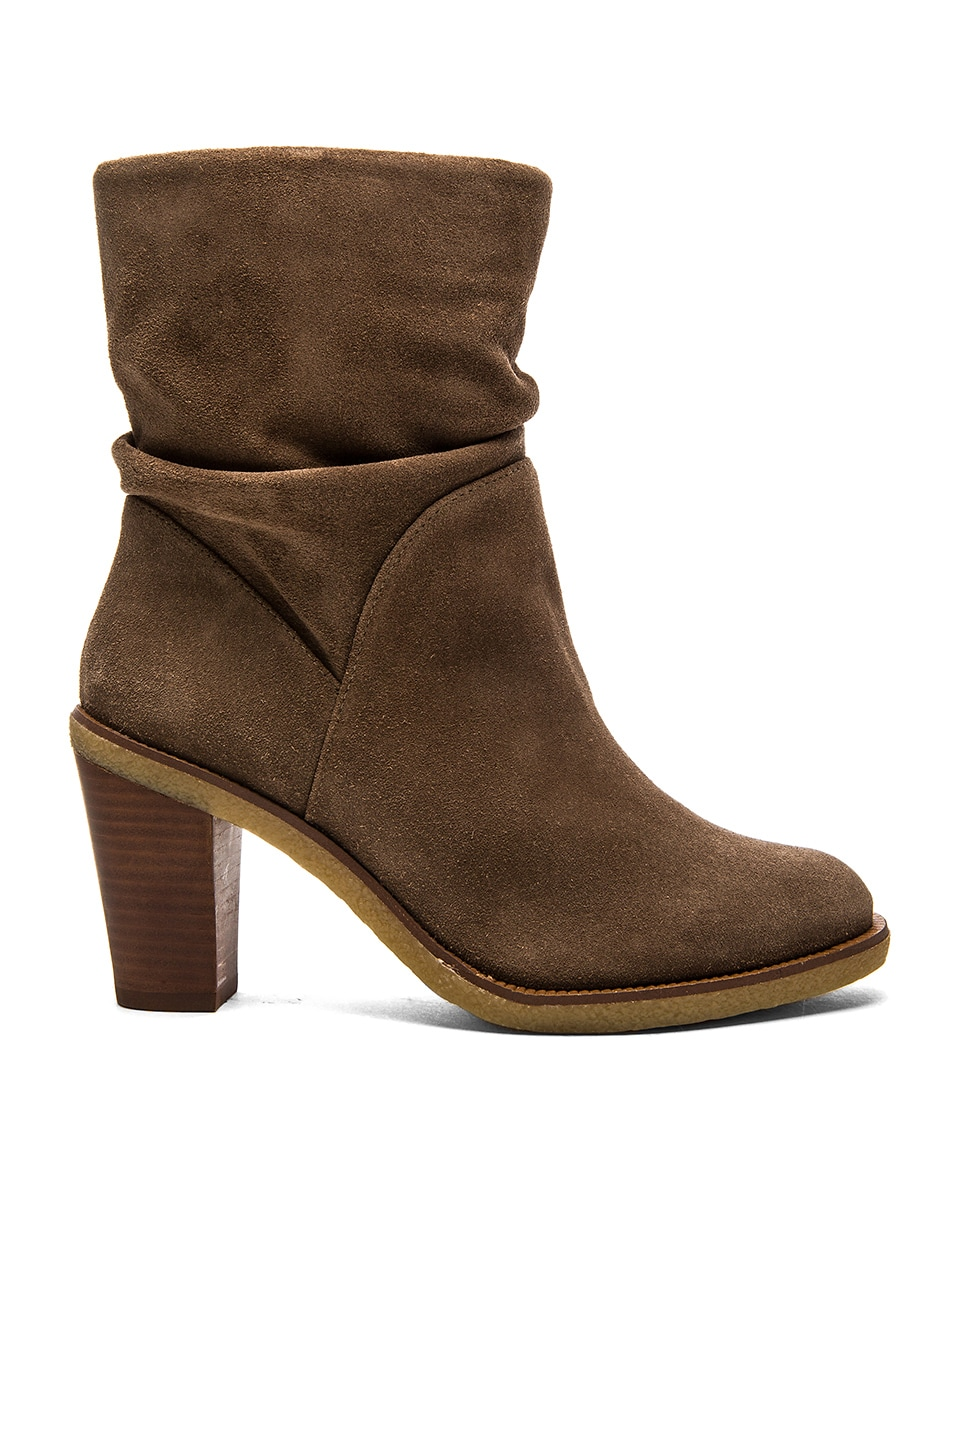 Vince Camuto Parka Bootie in Taupe